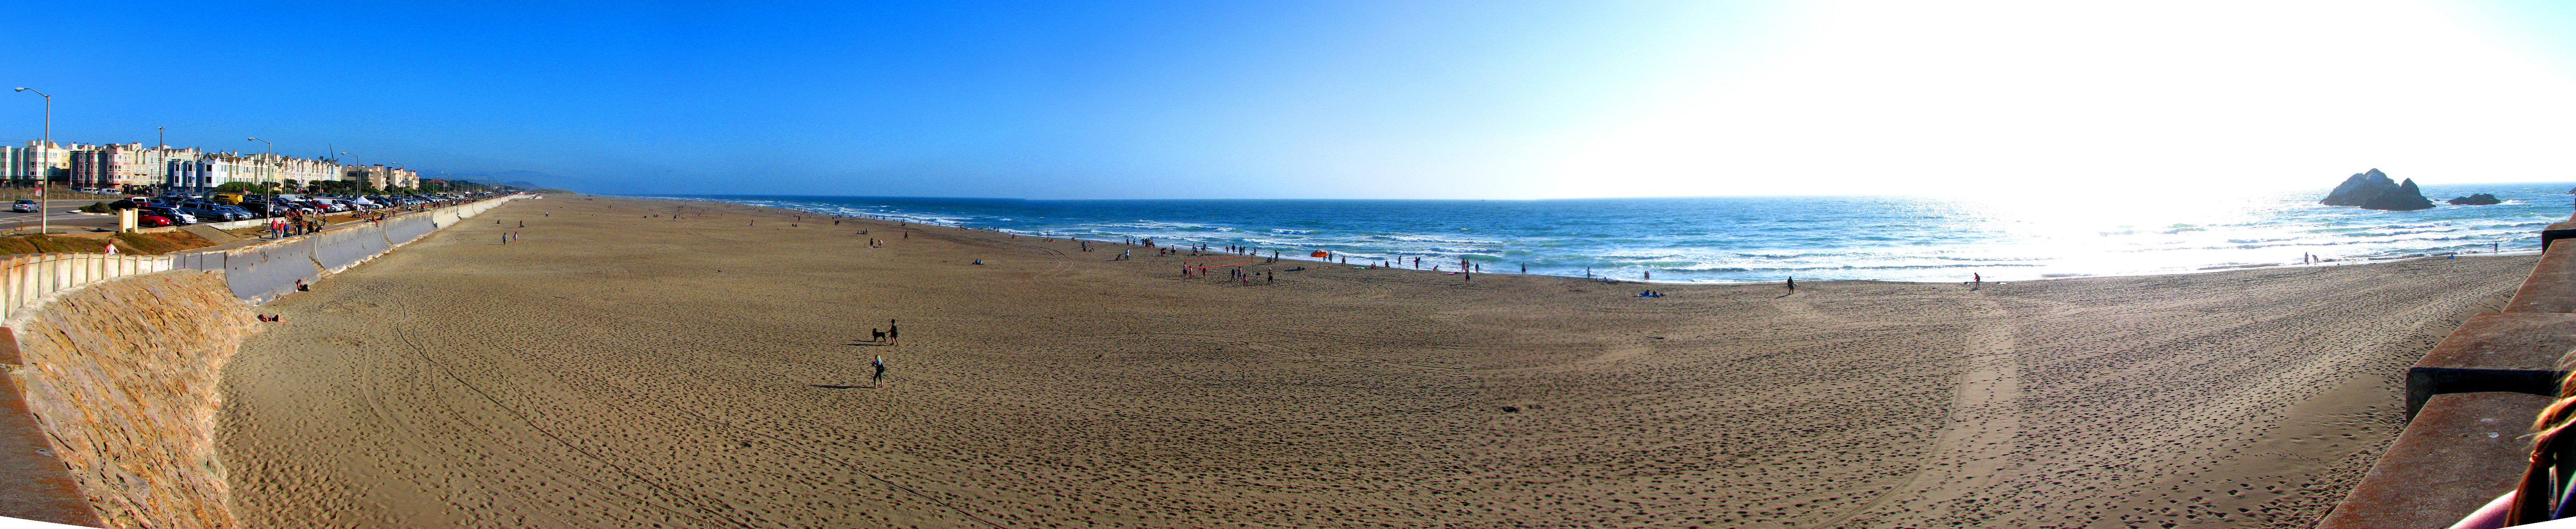 File:Panorama of Ocean Beach from Cliff house.jpg